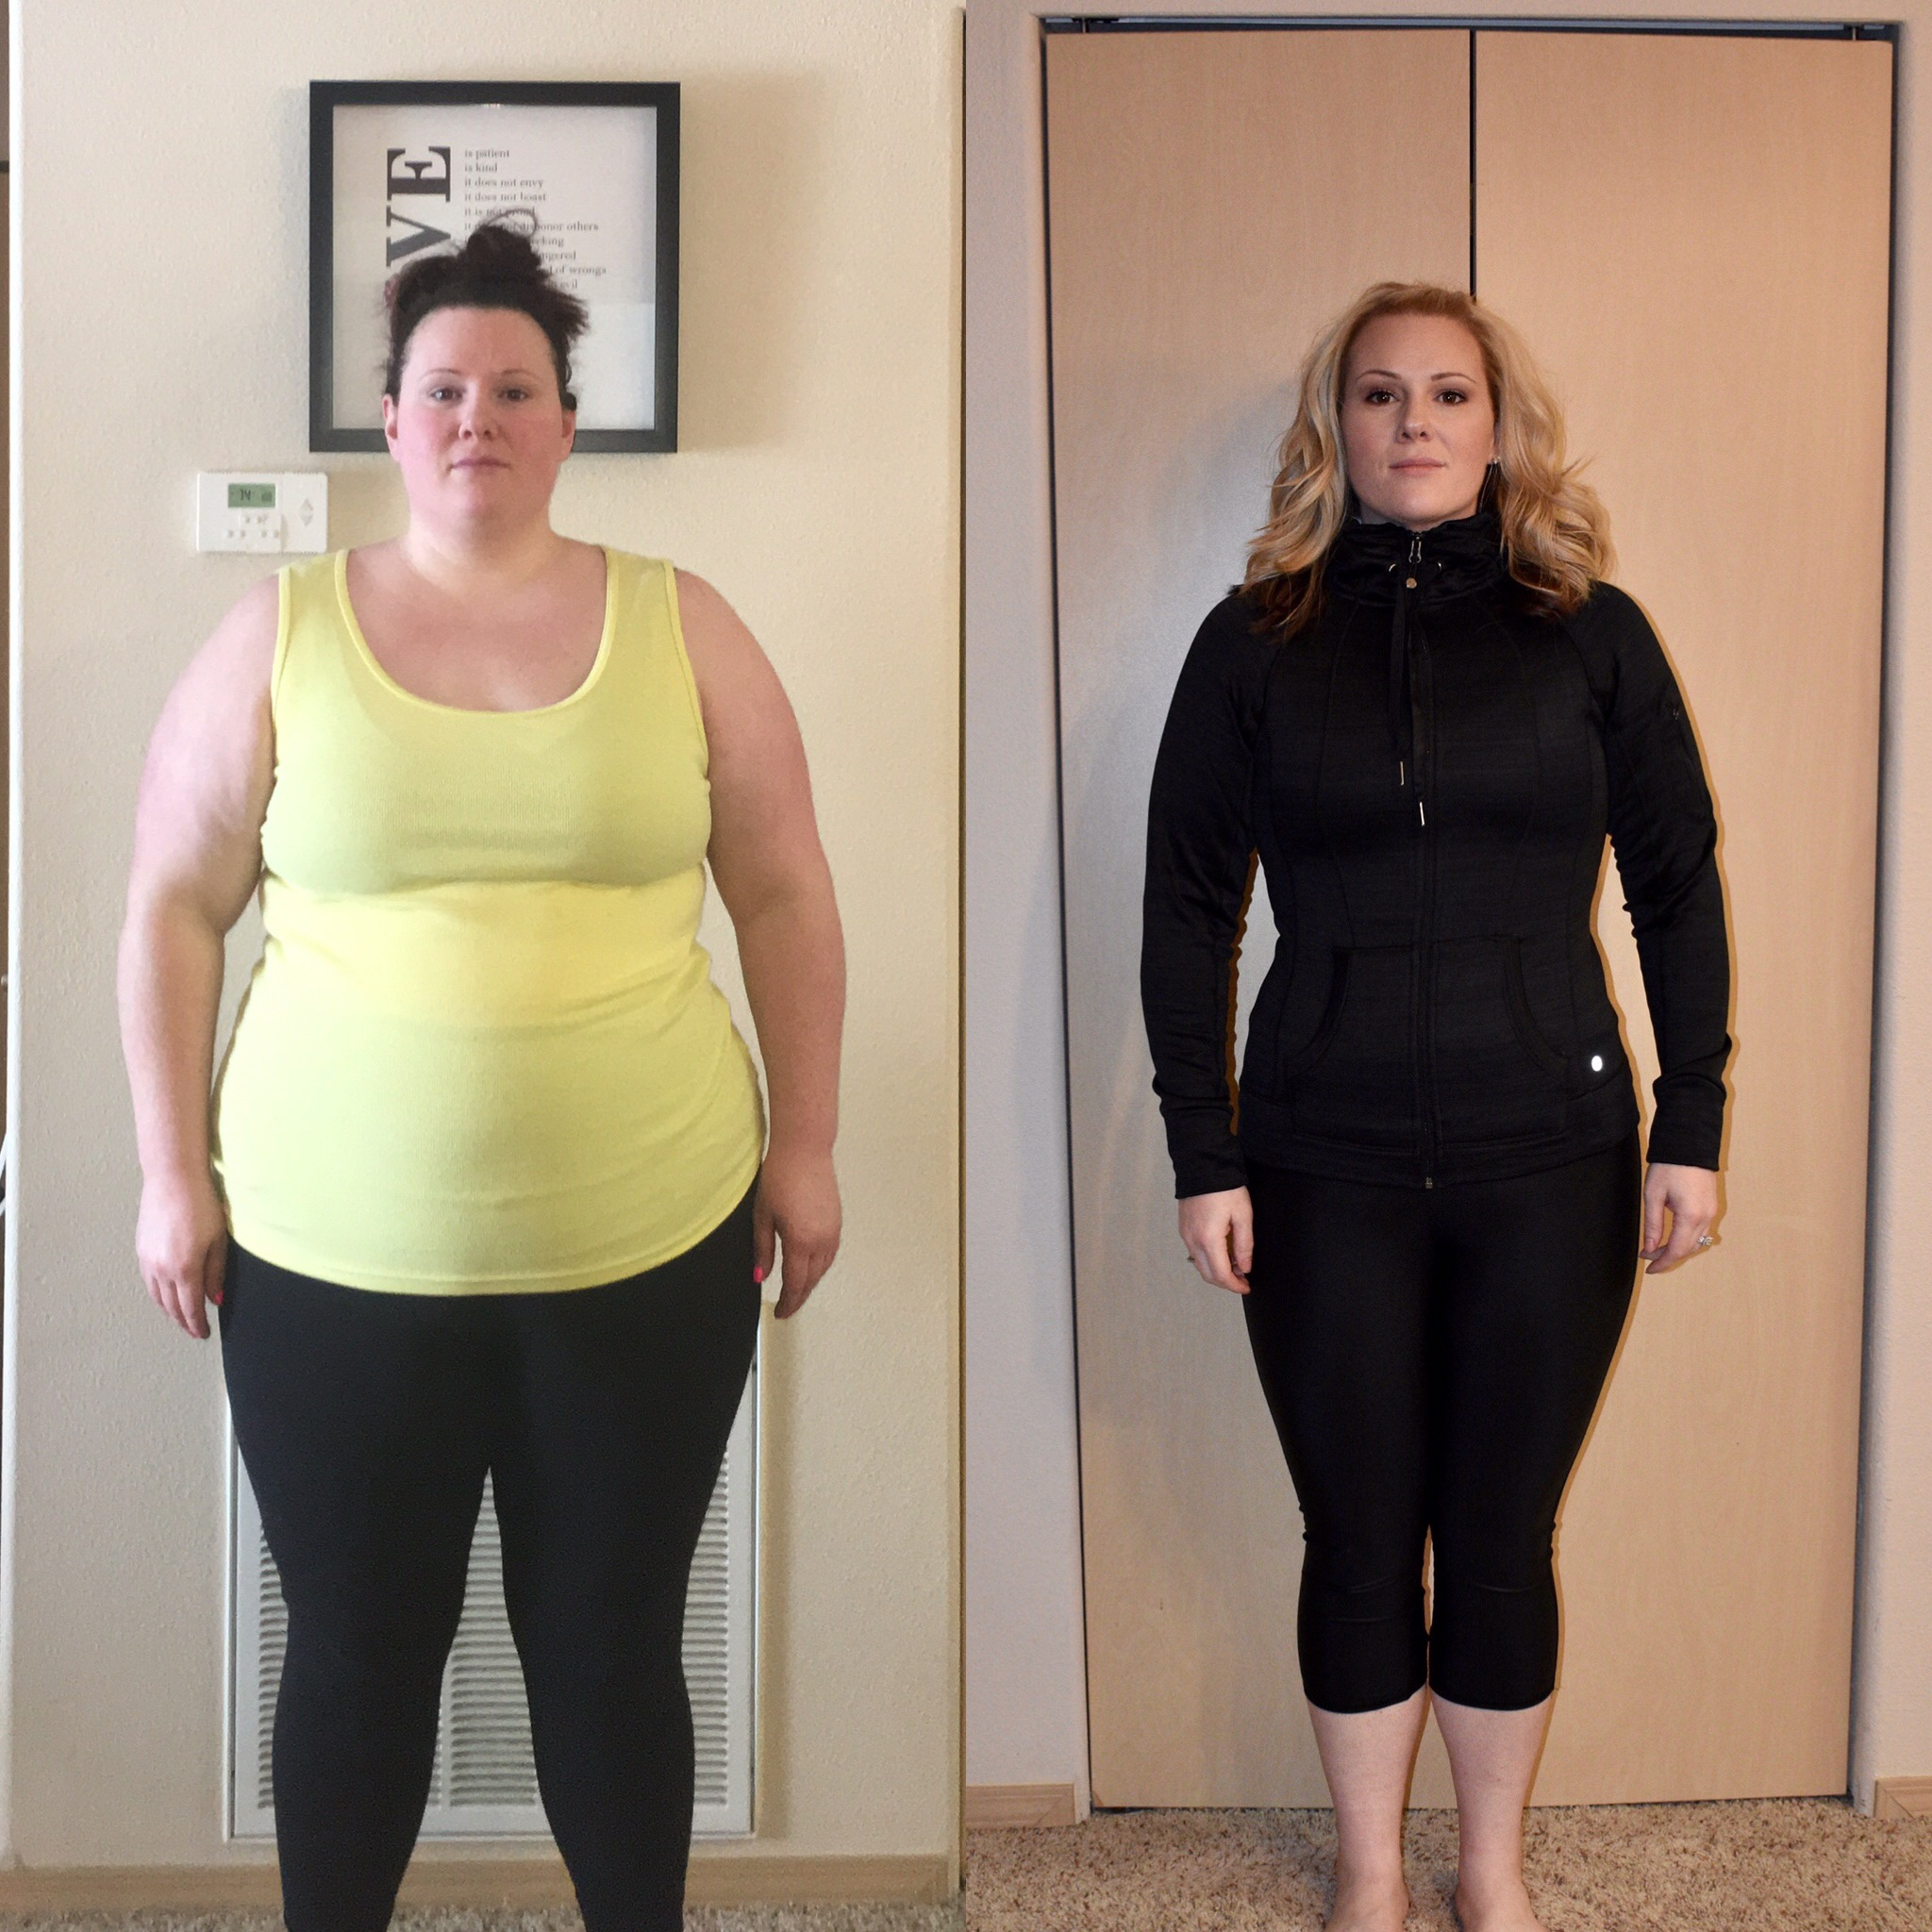 Andrea lost 160 pounds! See my before and after weight loss pictures, and read amazing weight loss success stories from real women and their best weight loss diet plans and programs. Motivation to lose weight with walking and inspiration from before and after weightloss pics and photos.